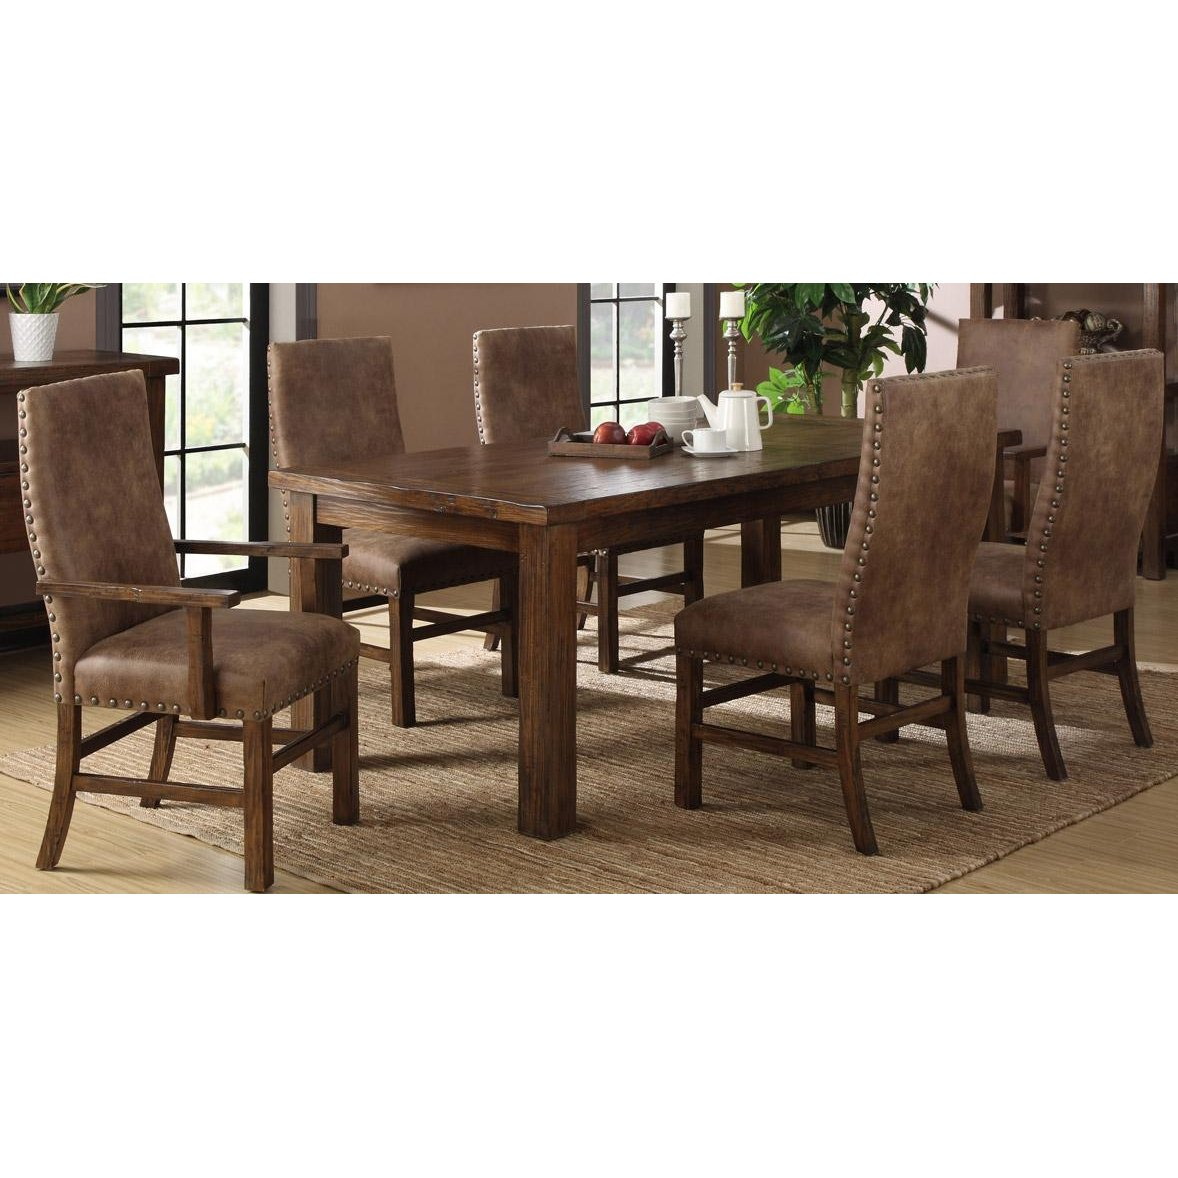 Brown 5 Piece Dining Set With Upholstered Chairs Chambers Creek